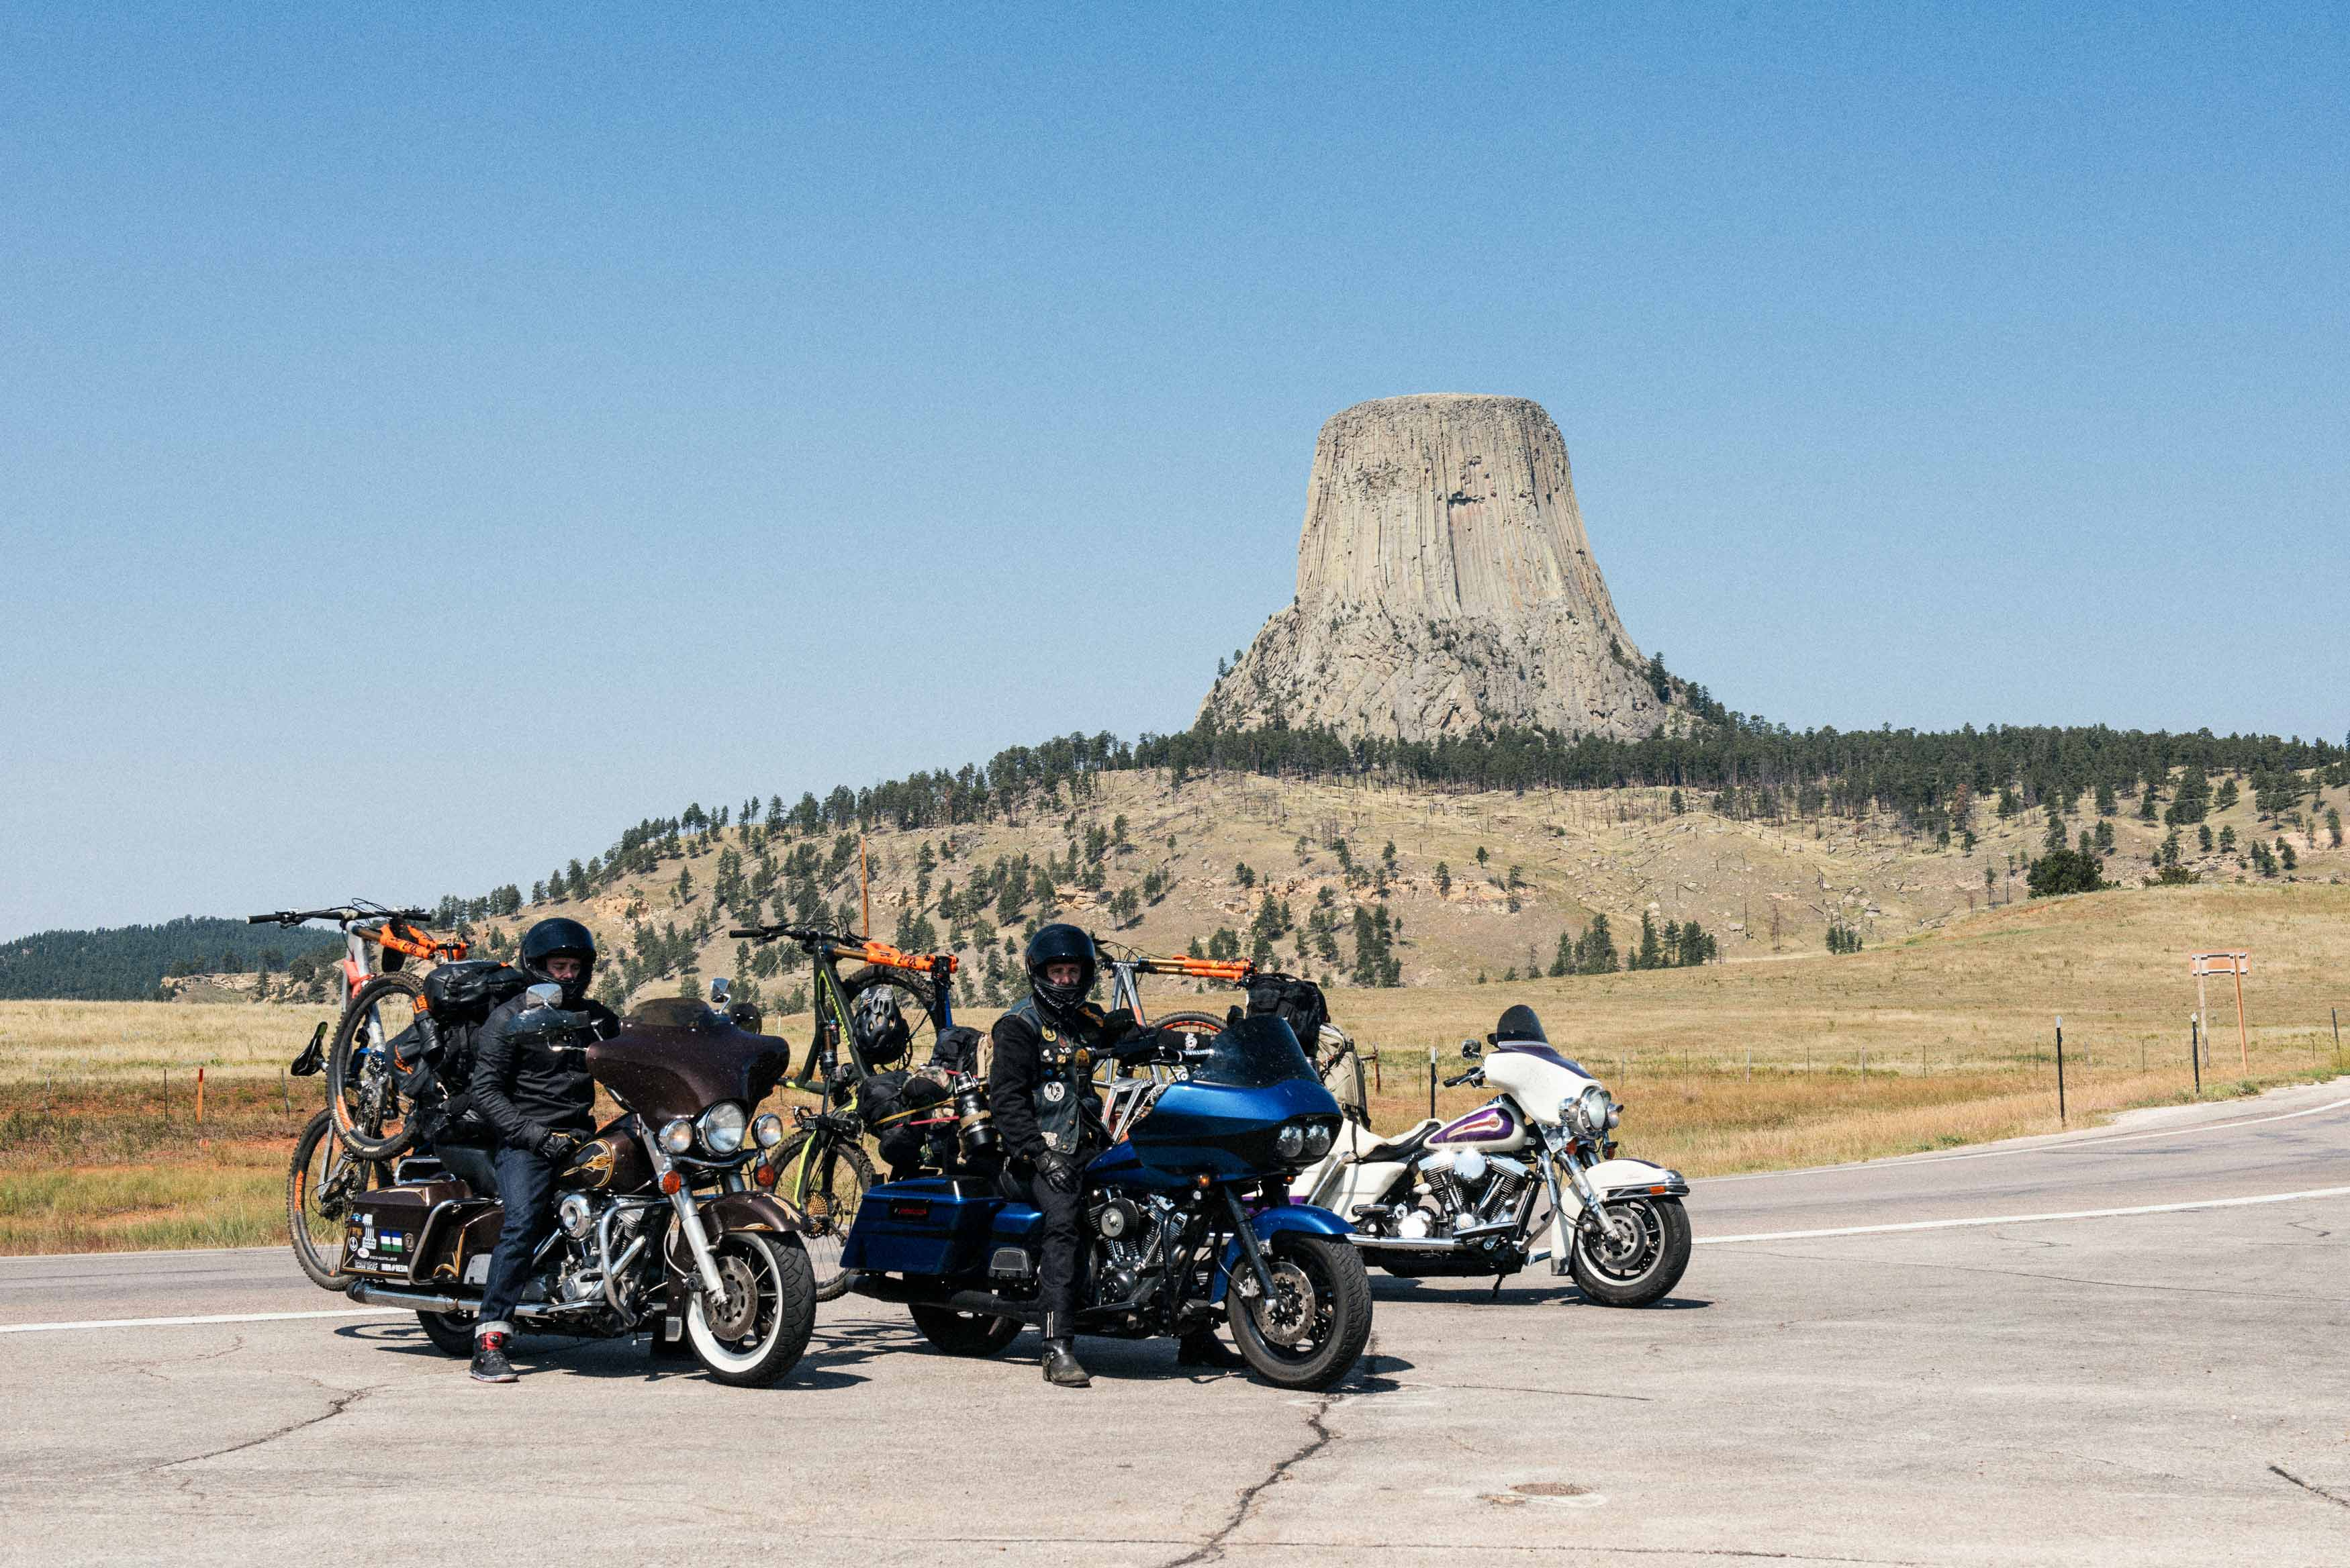 Bikes on Bikes: Roadtripping to Sturgis and Crankworx - The Loam Wolf